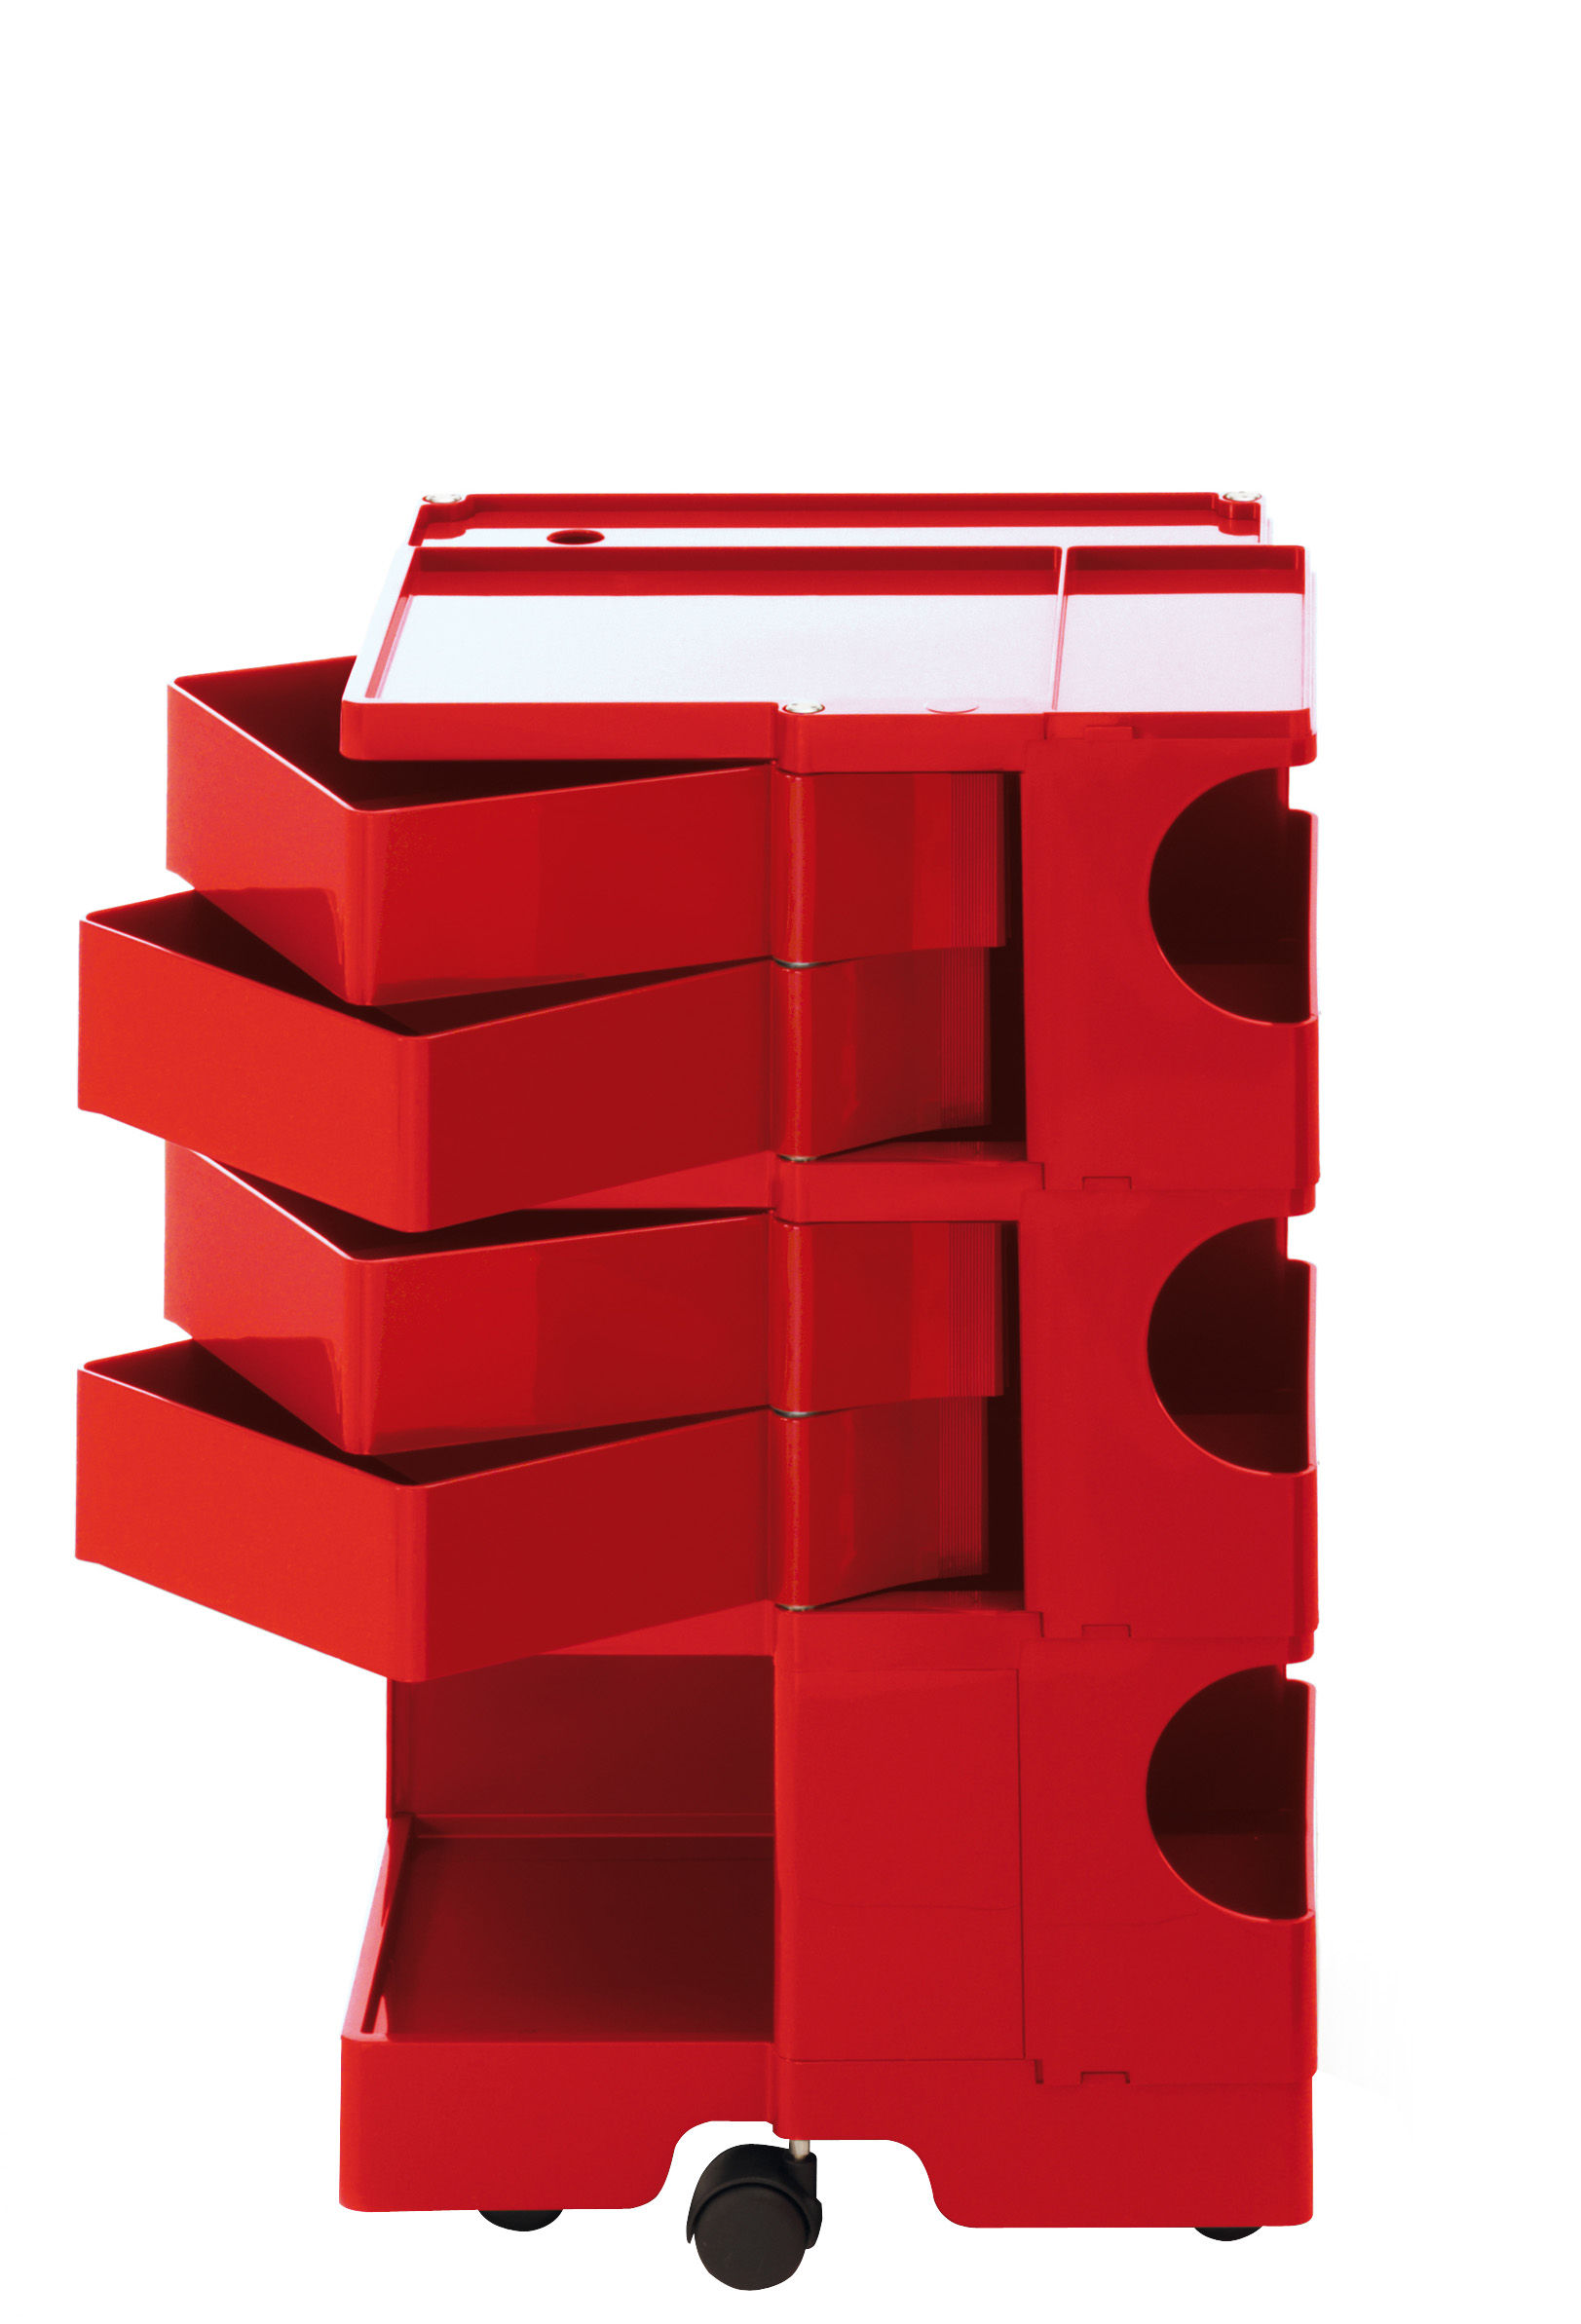 Furniture - Miscellaneous furniture - Boby Dresser - H 73 cm - 4 drawers by B-LINE - Red - ABS